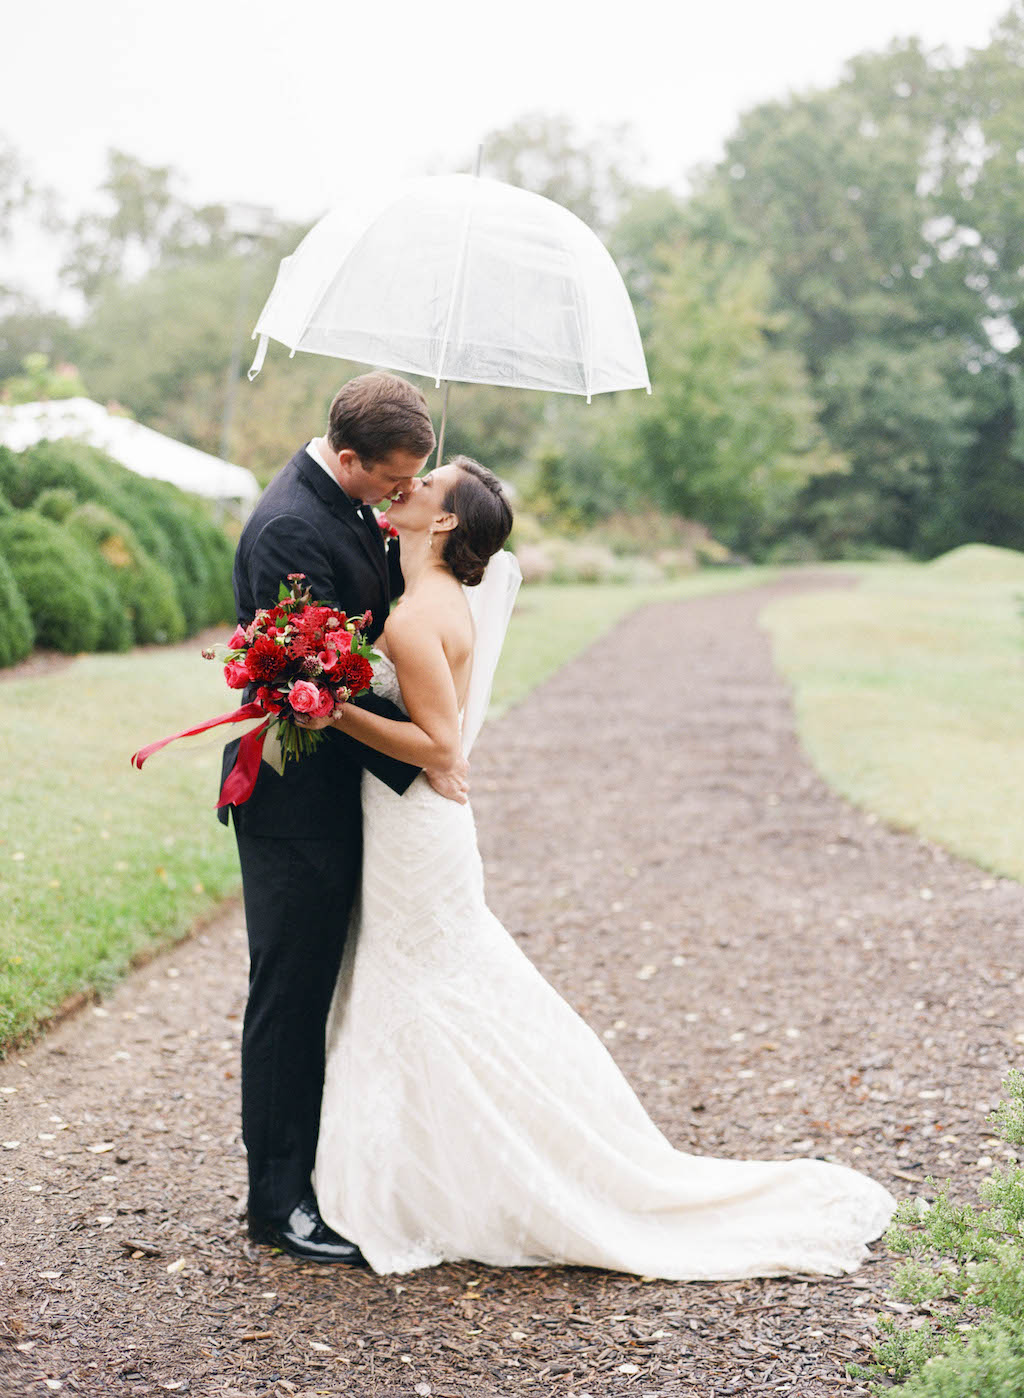 6-30-16-berry-purple-river-farm-rainy-day-wedding-14